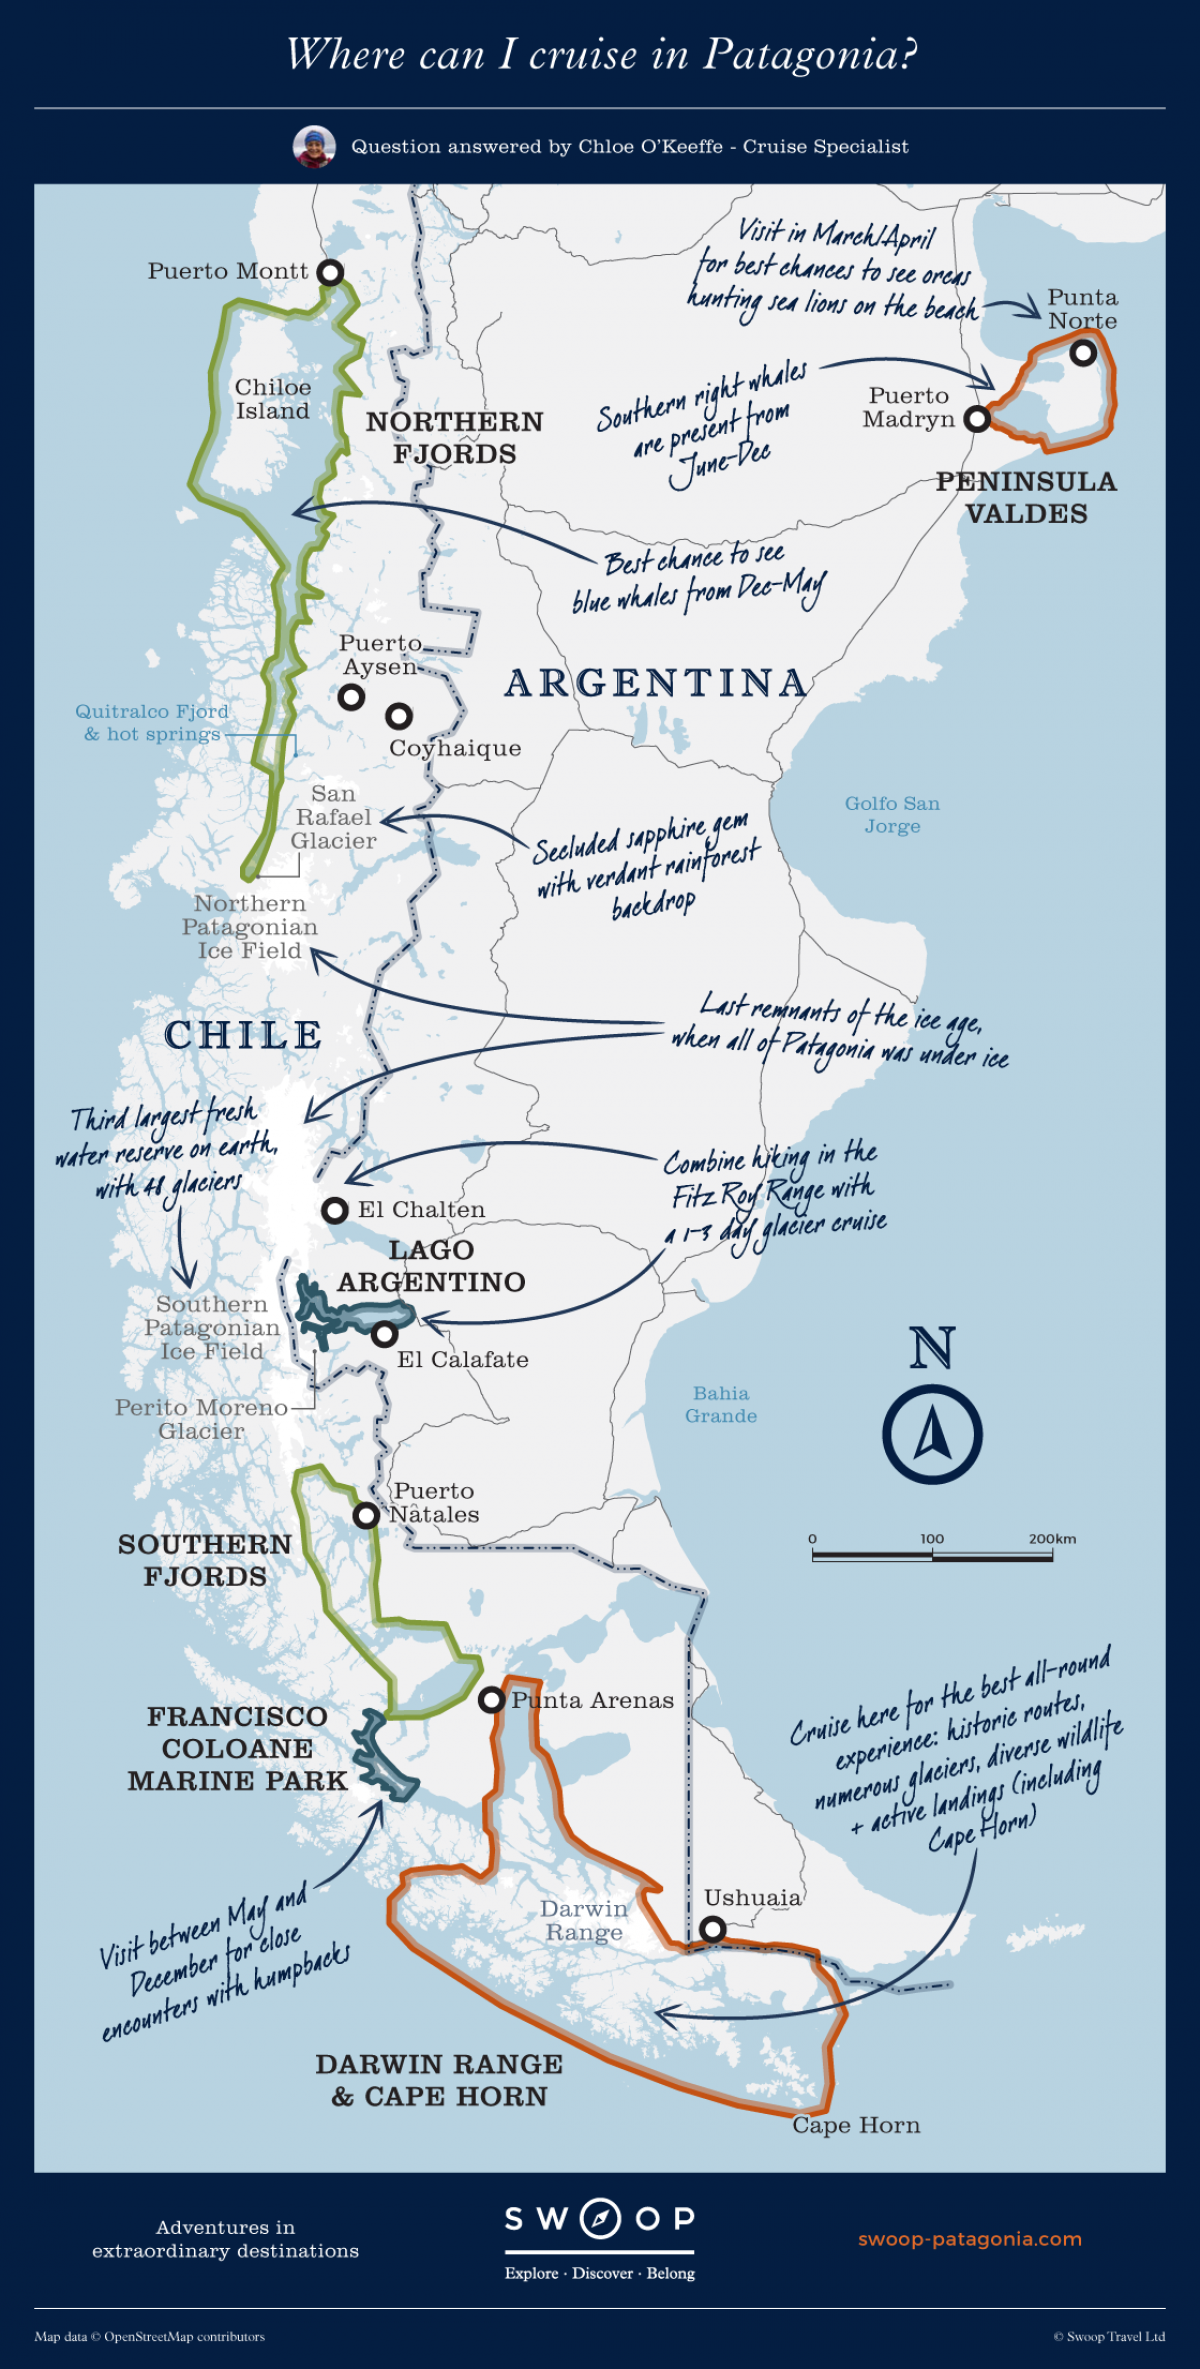 Patagonien Highlights Karte.Map Showing Where You Can Cruise In Patagonia Access Areas Of